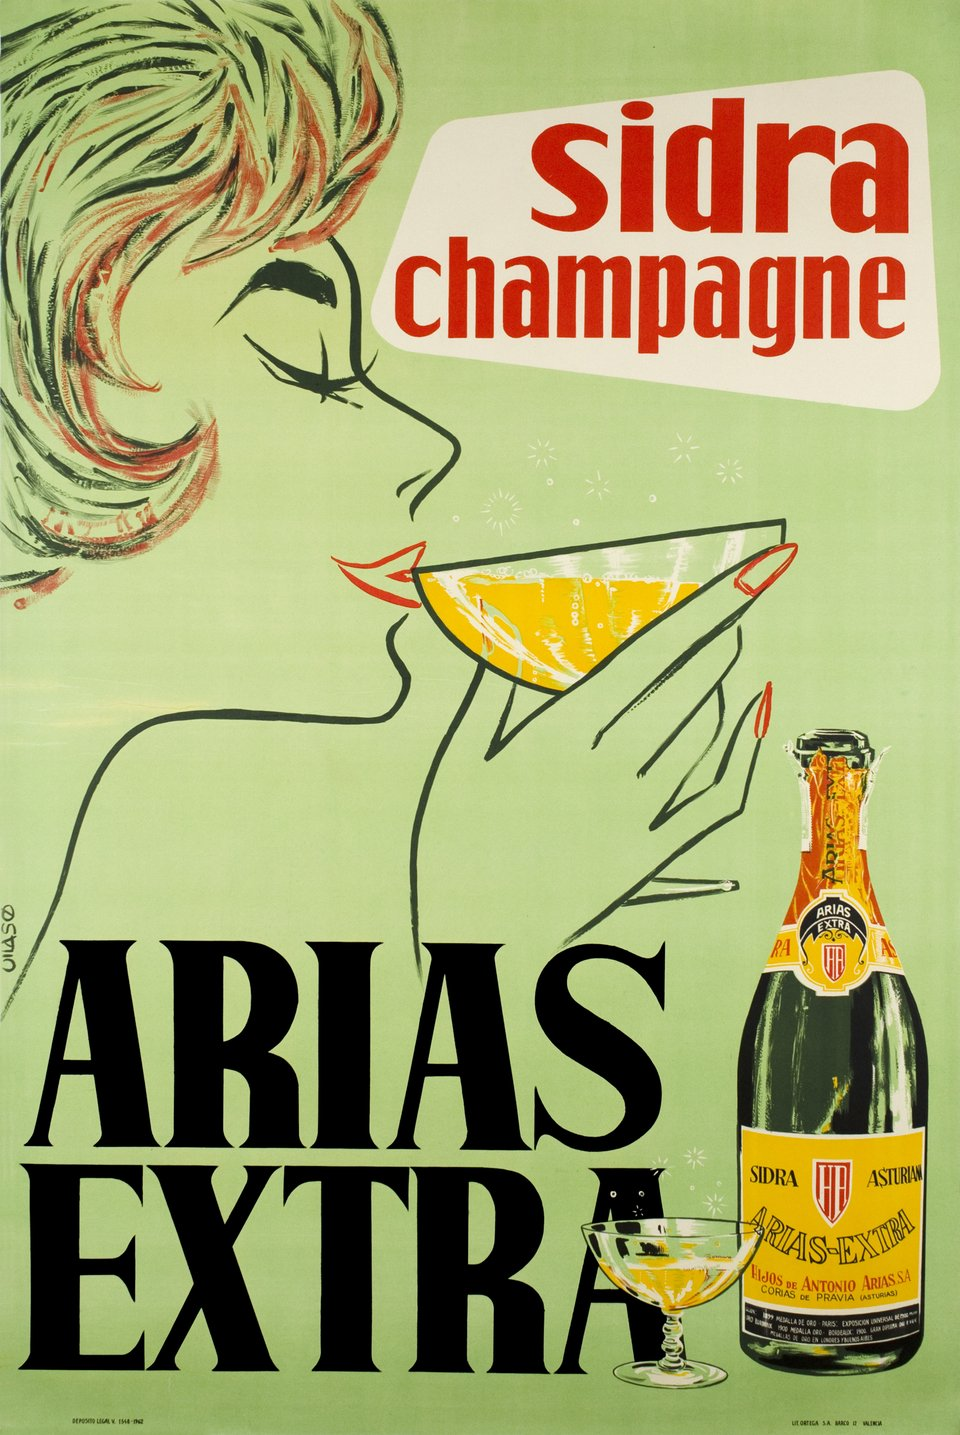 Sidra Champagne, Arias Extra – Affiche ancienne – VILASO – 1962